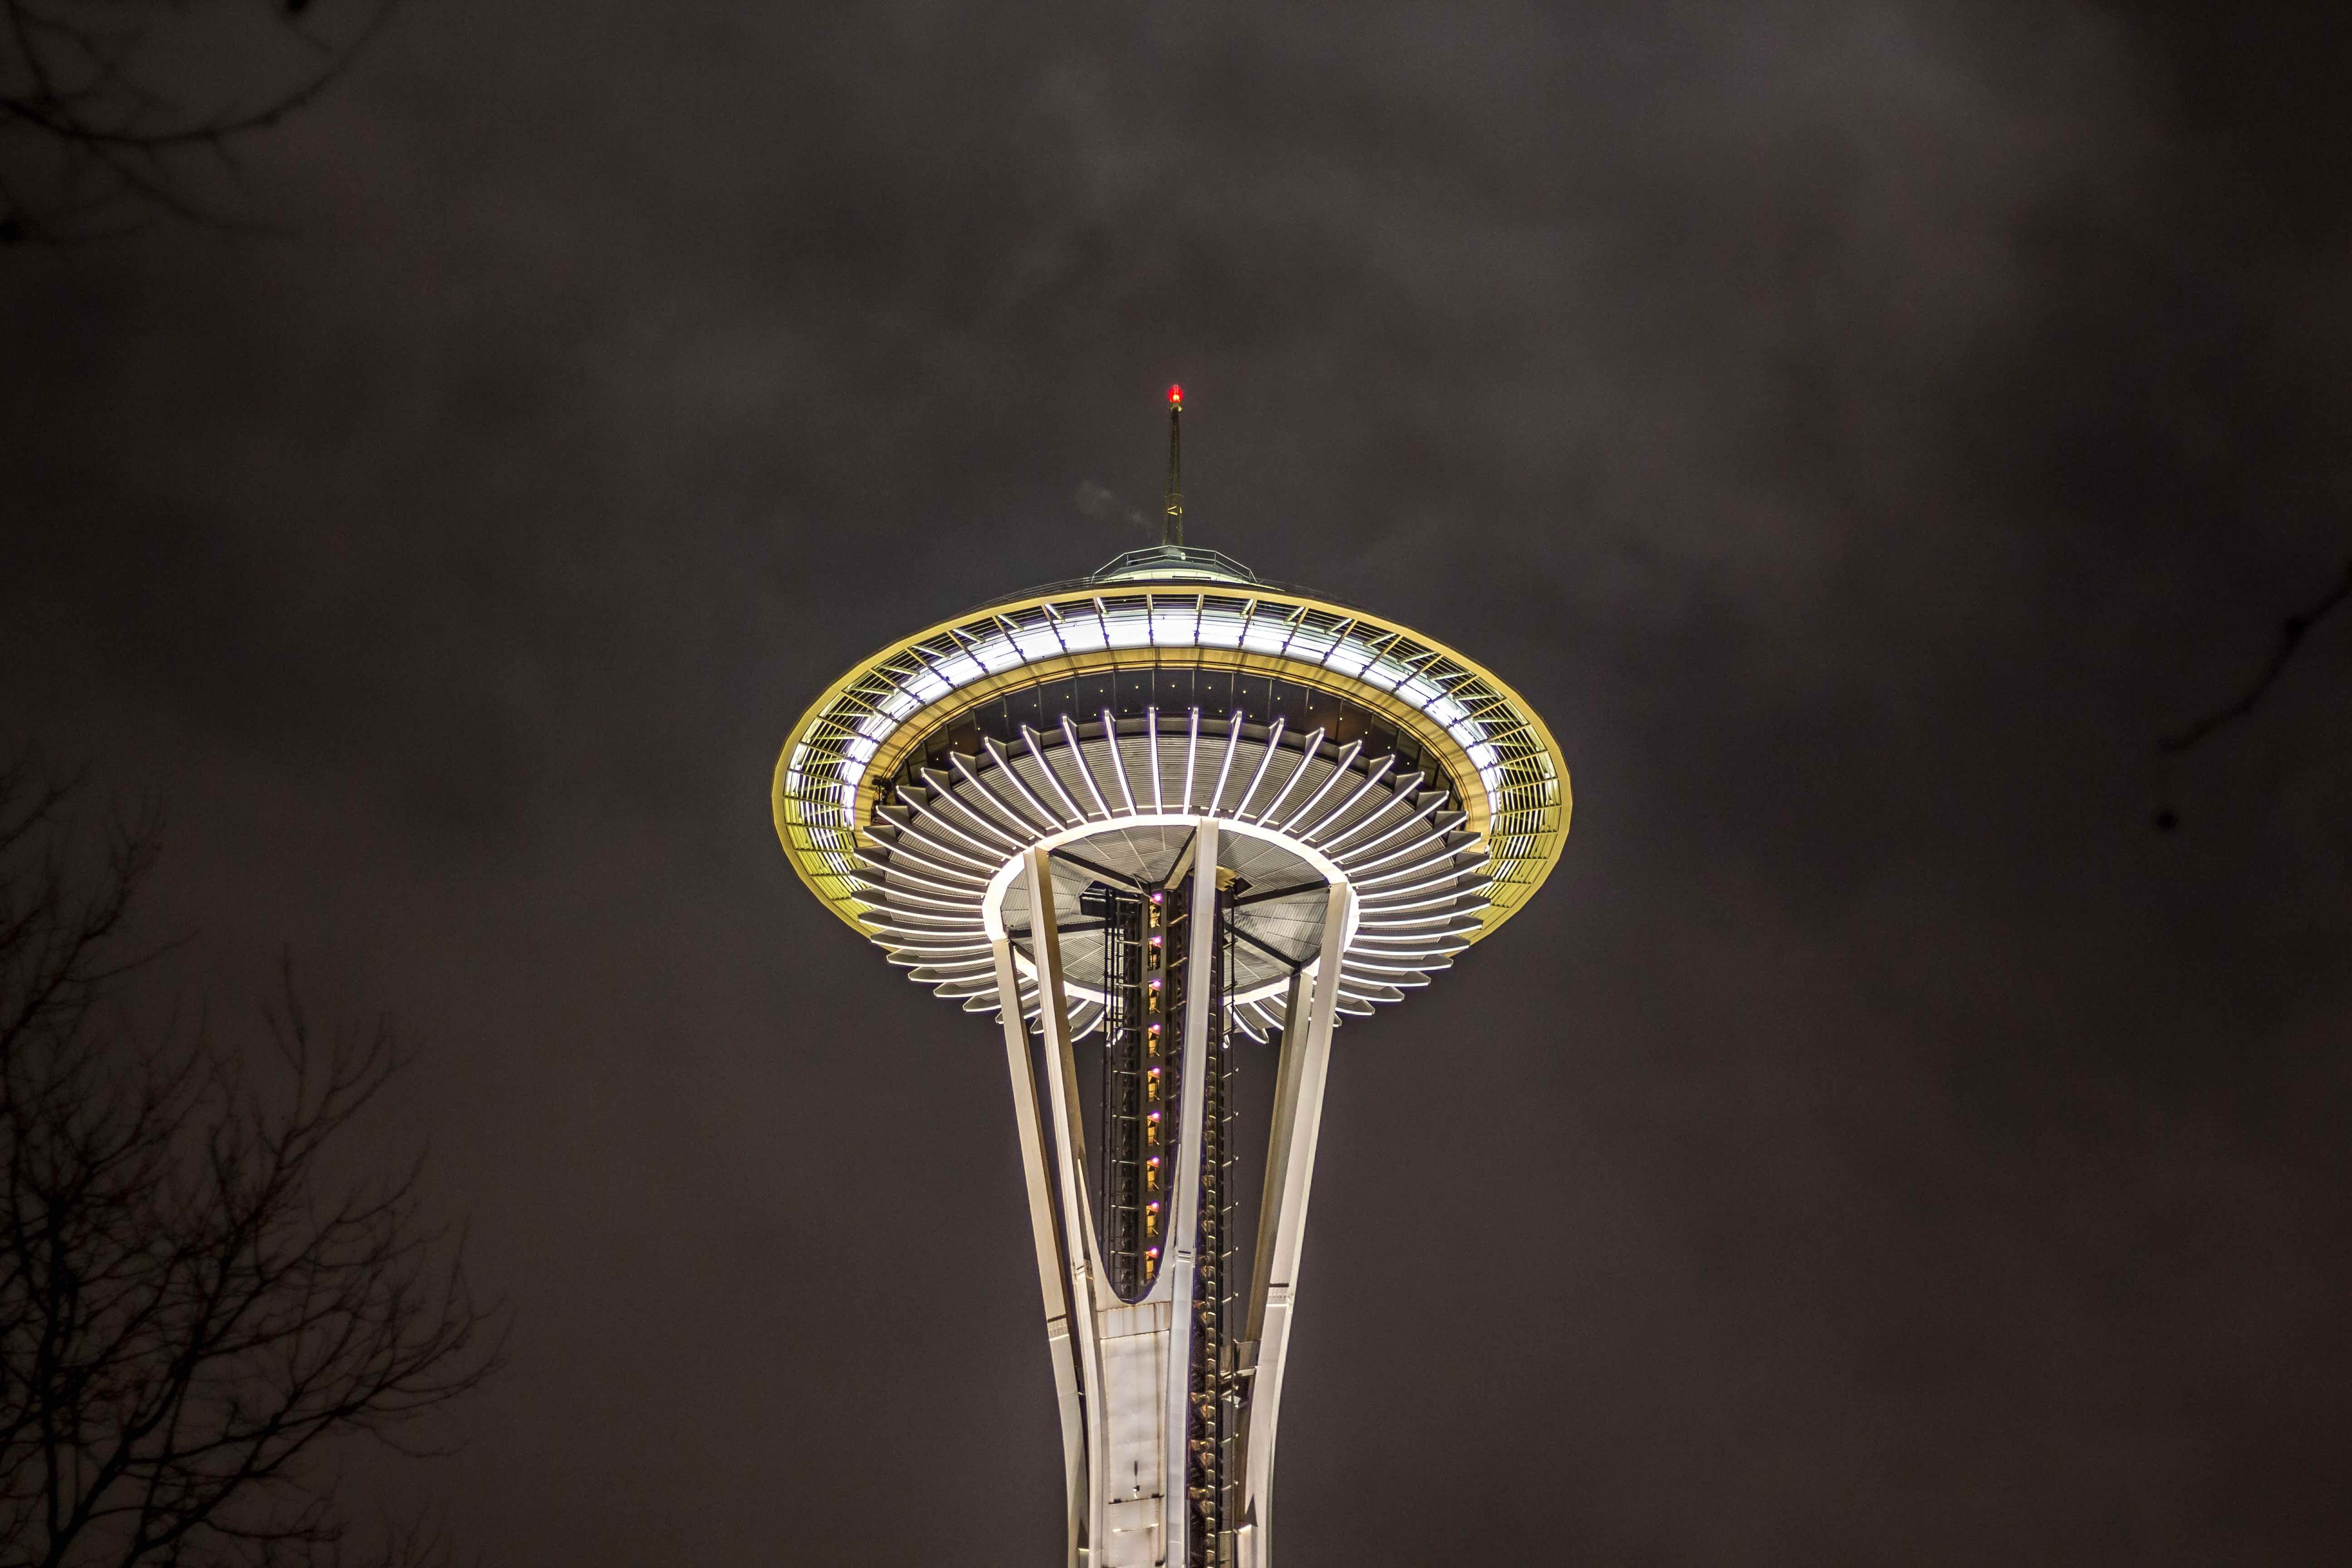 Space Needle, Washington